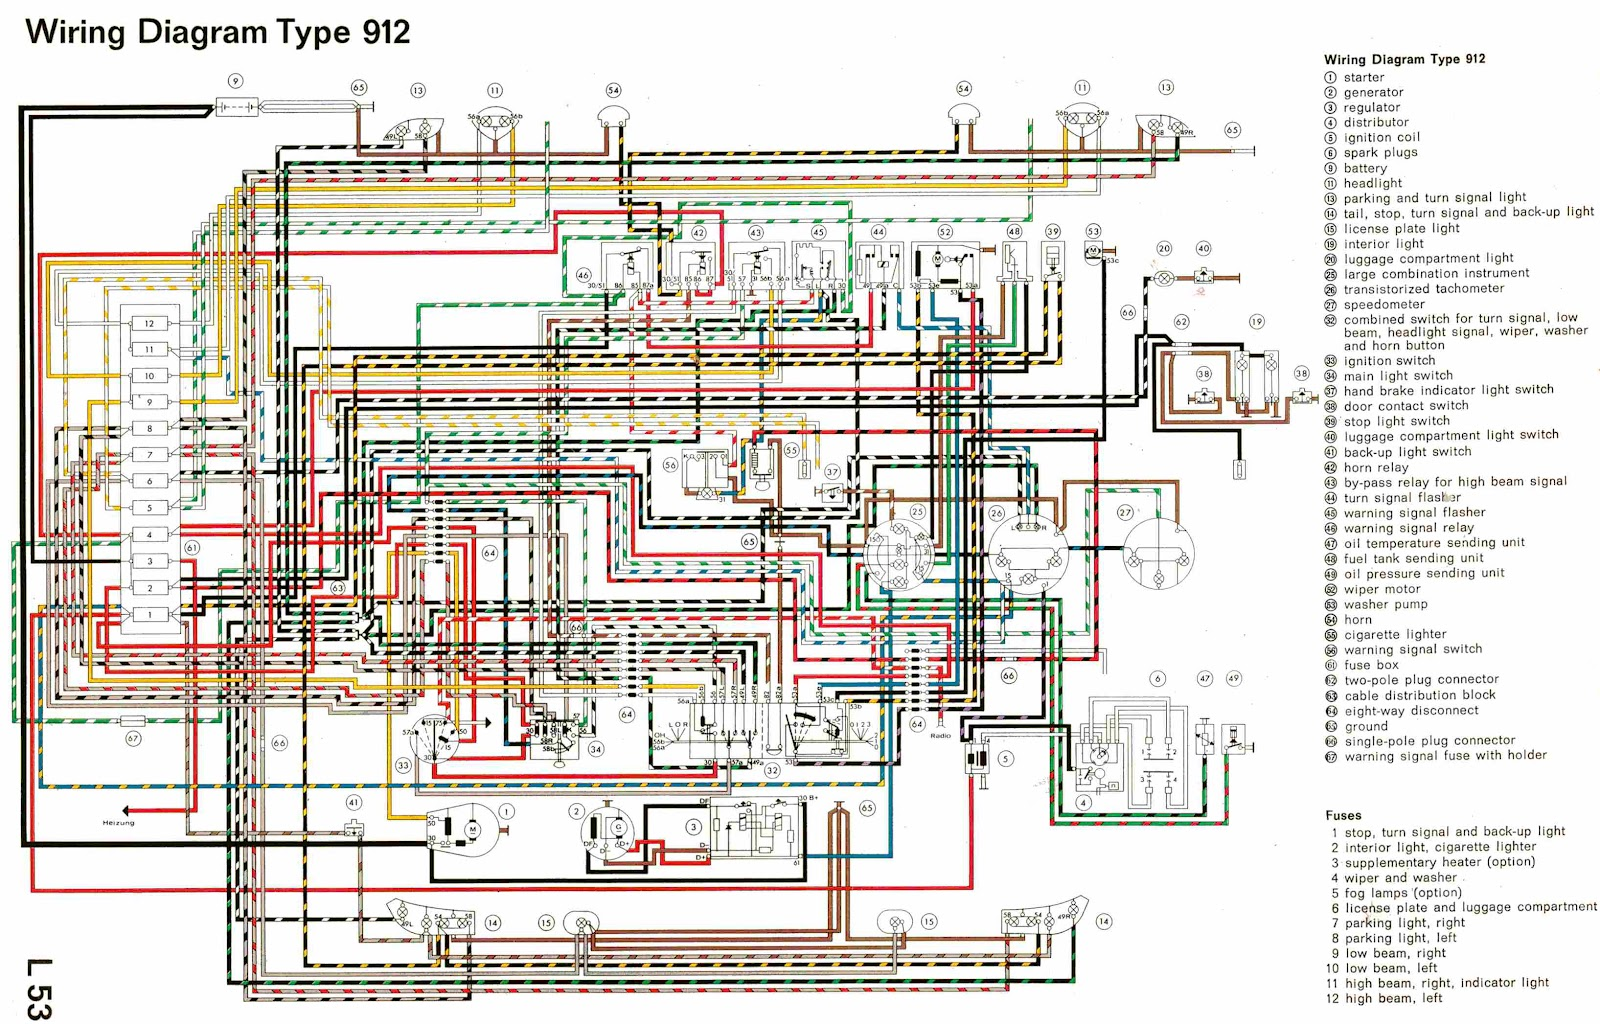 2005 jaguar s type wiring diagram eolsubu diagrams 633455 jaguar s type  wiring